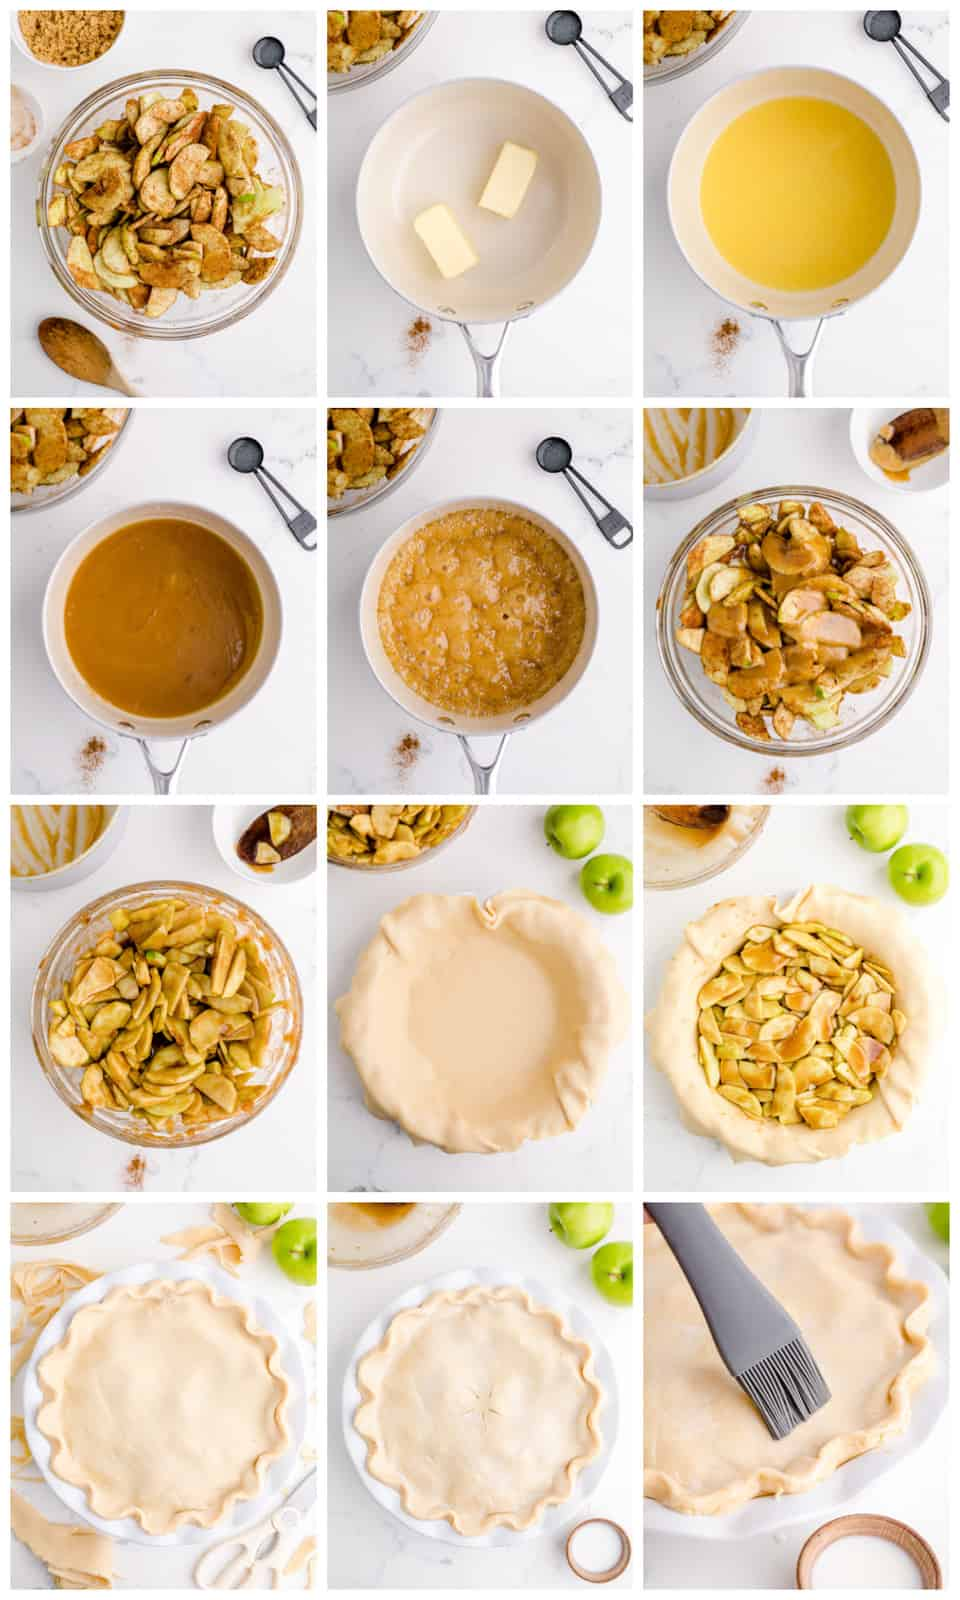 Step by step photos on how to make Apple Pie.